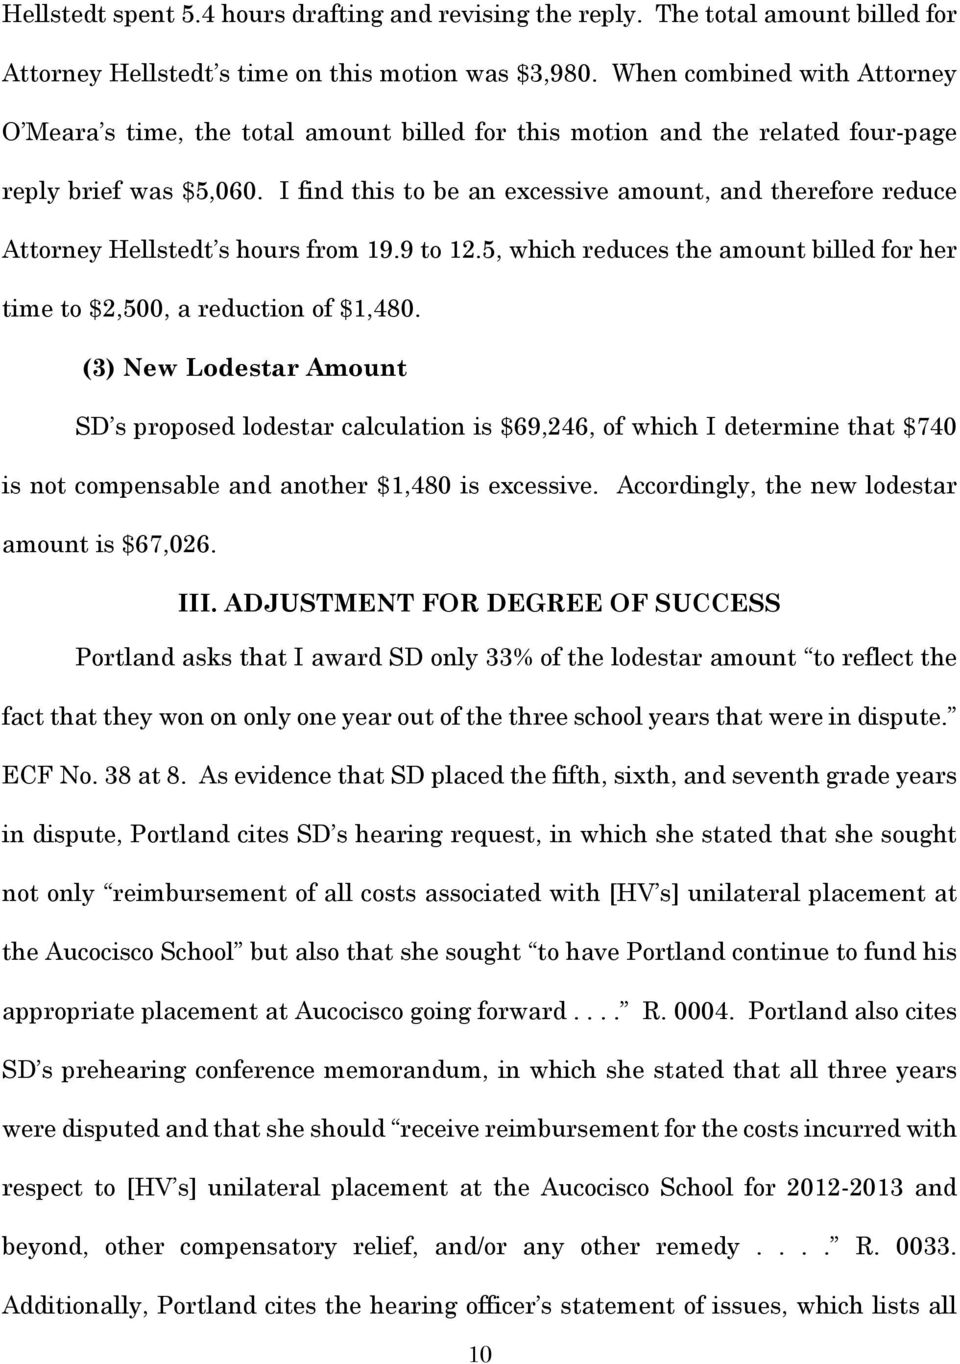 I find this to be an excessive amount, and therefore reduce Attorney Hellstedt s hours from 19.9 to 12.5, which reduces the amount billed for her time to $2,500, a reduction of $1,480.